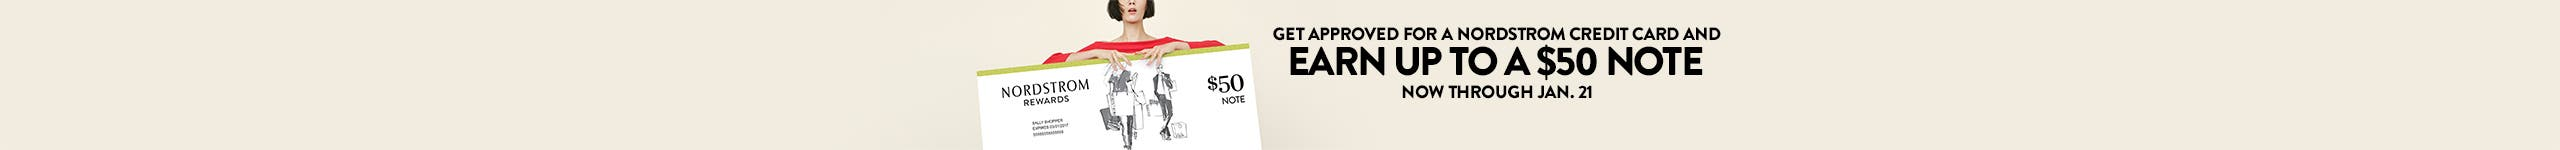 Get approved for a Nordstrom credit card and earn up to a $50 Note. Now through February 12.